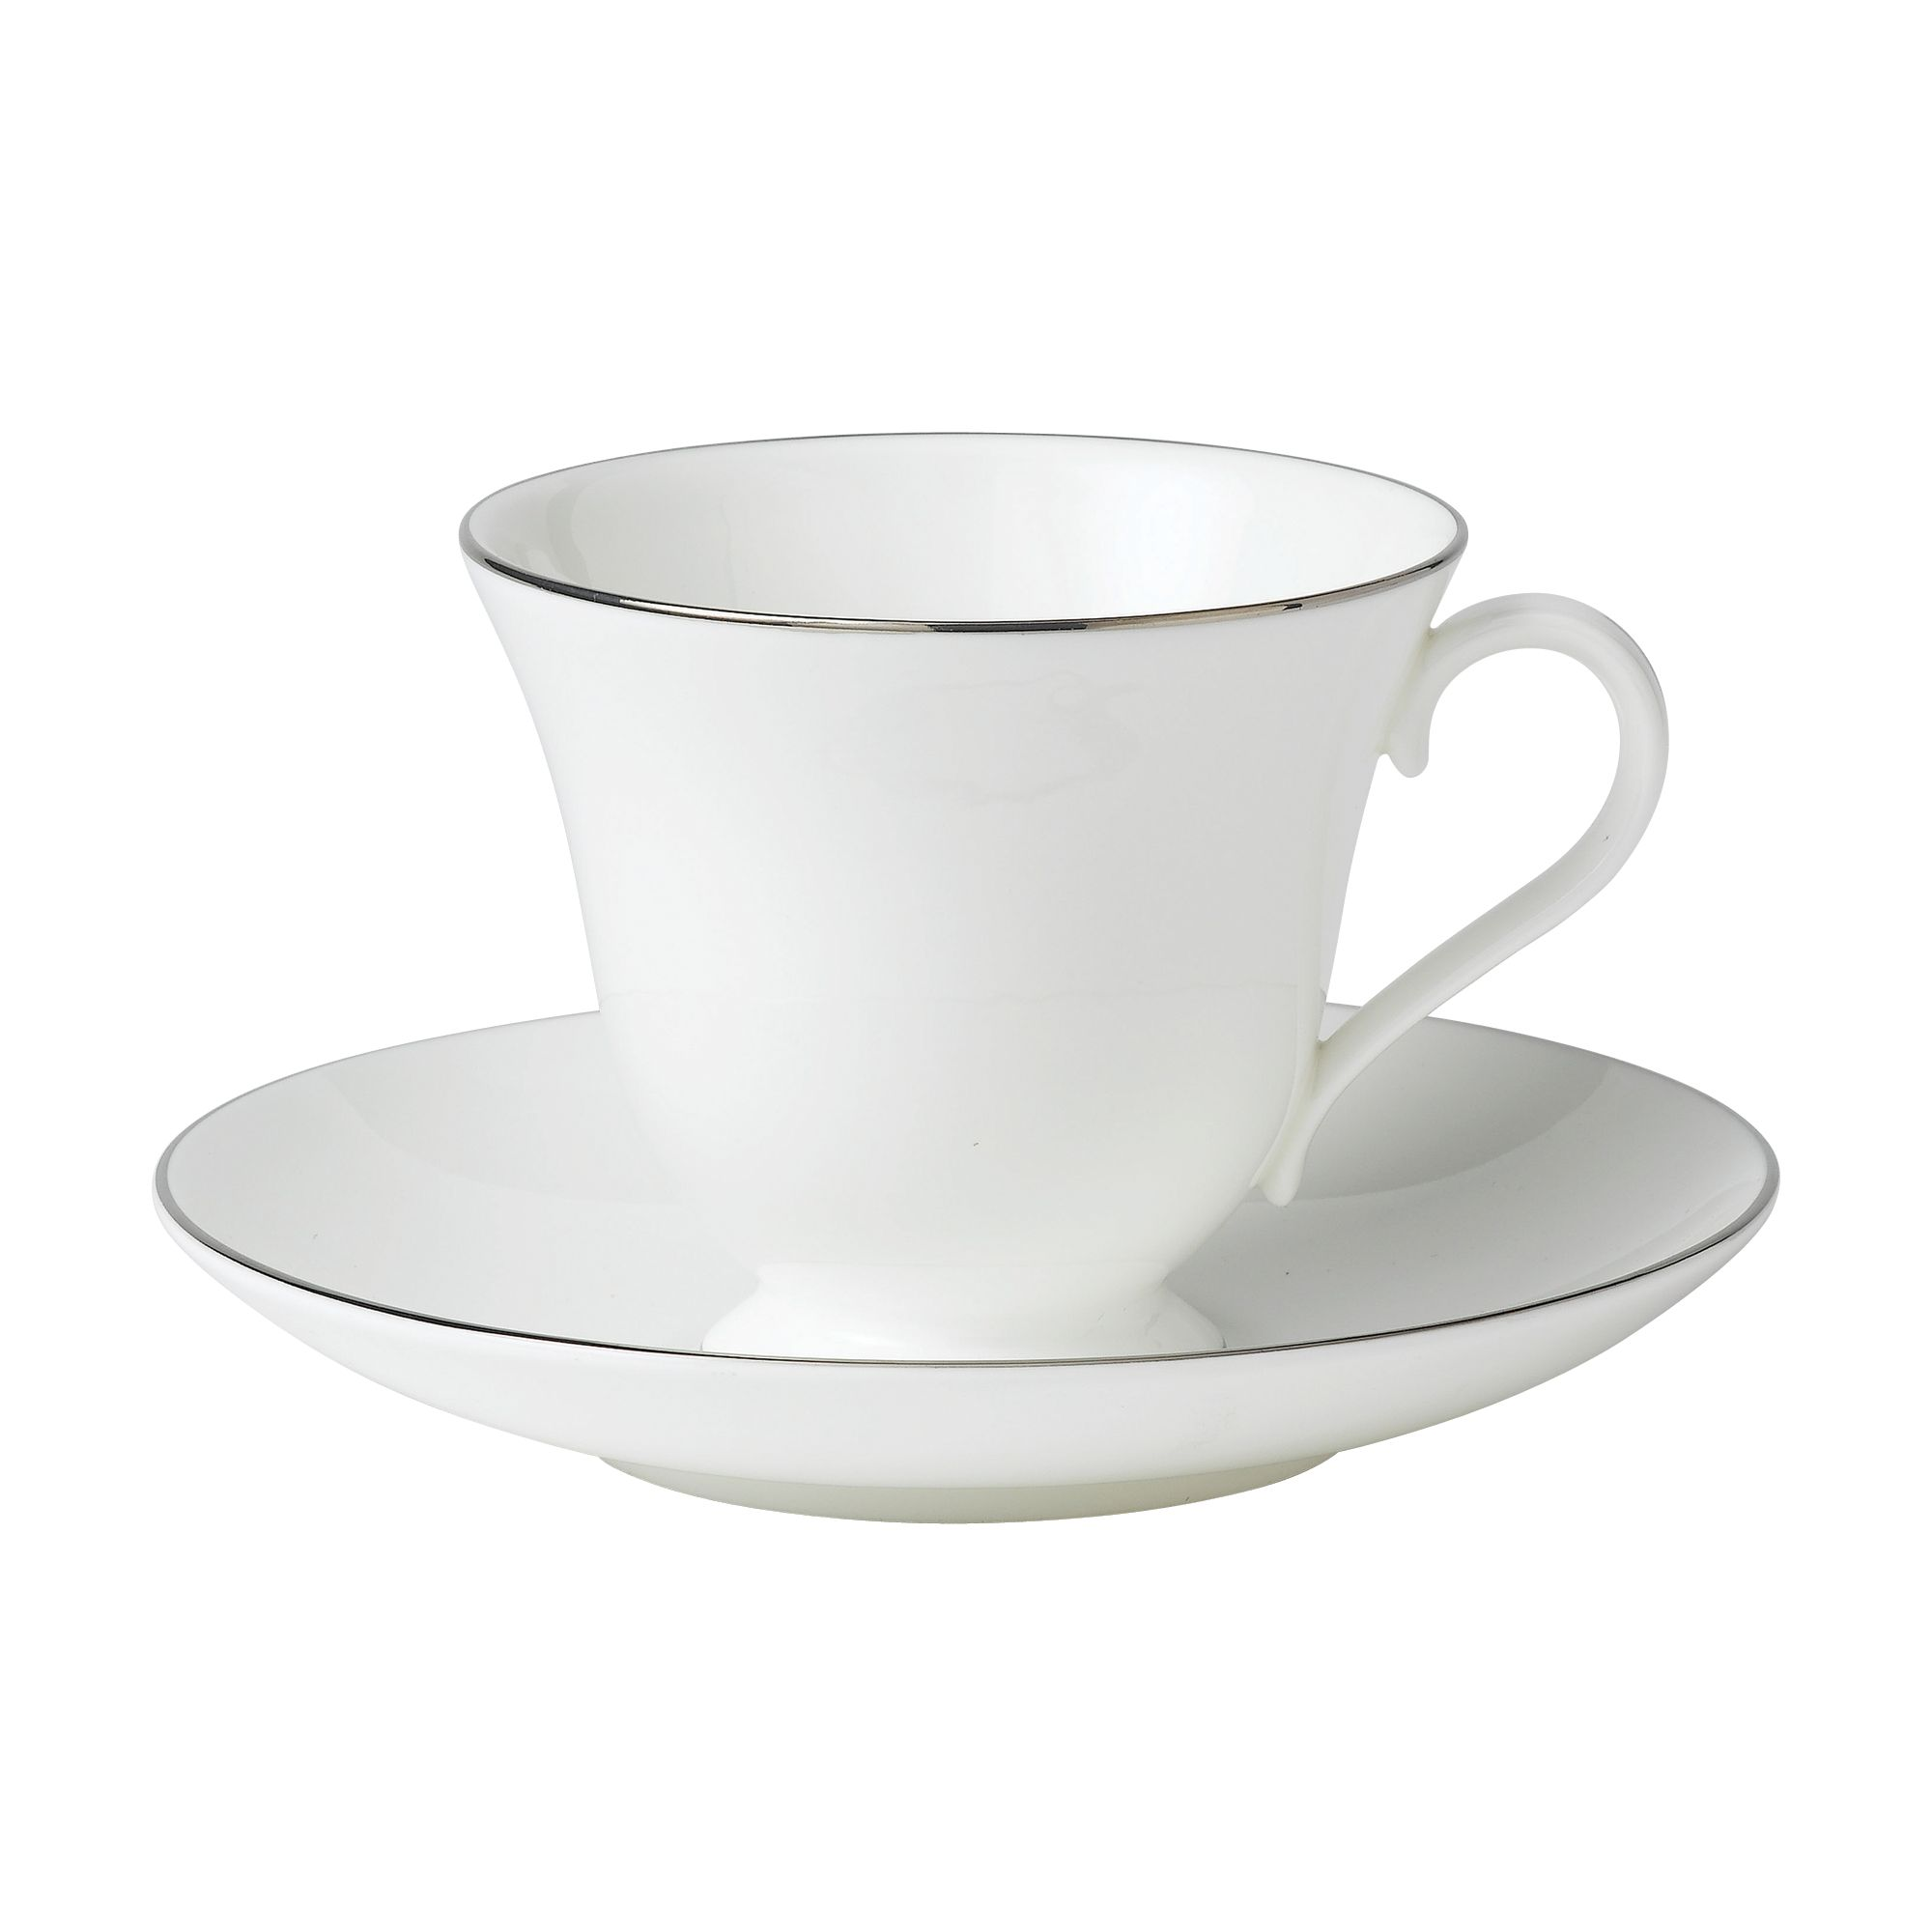 Signet platinum fine china teacup